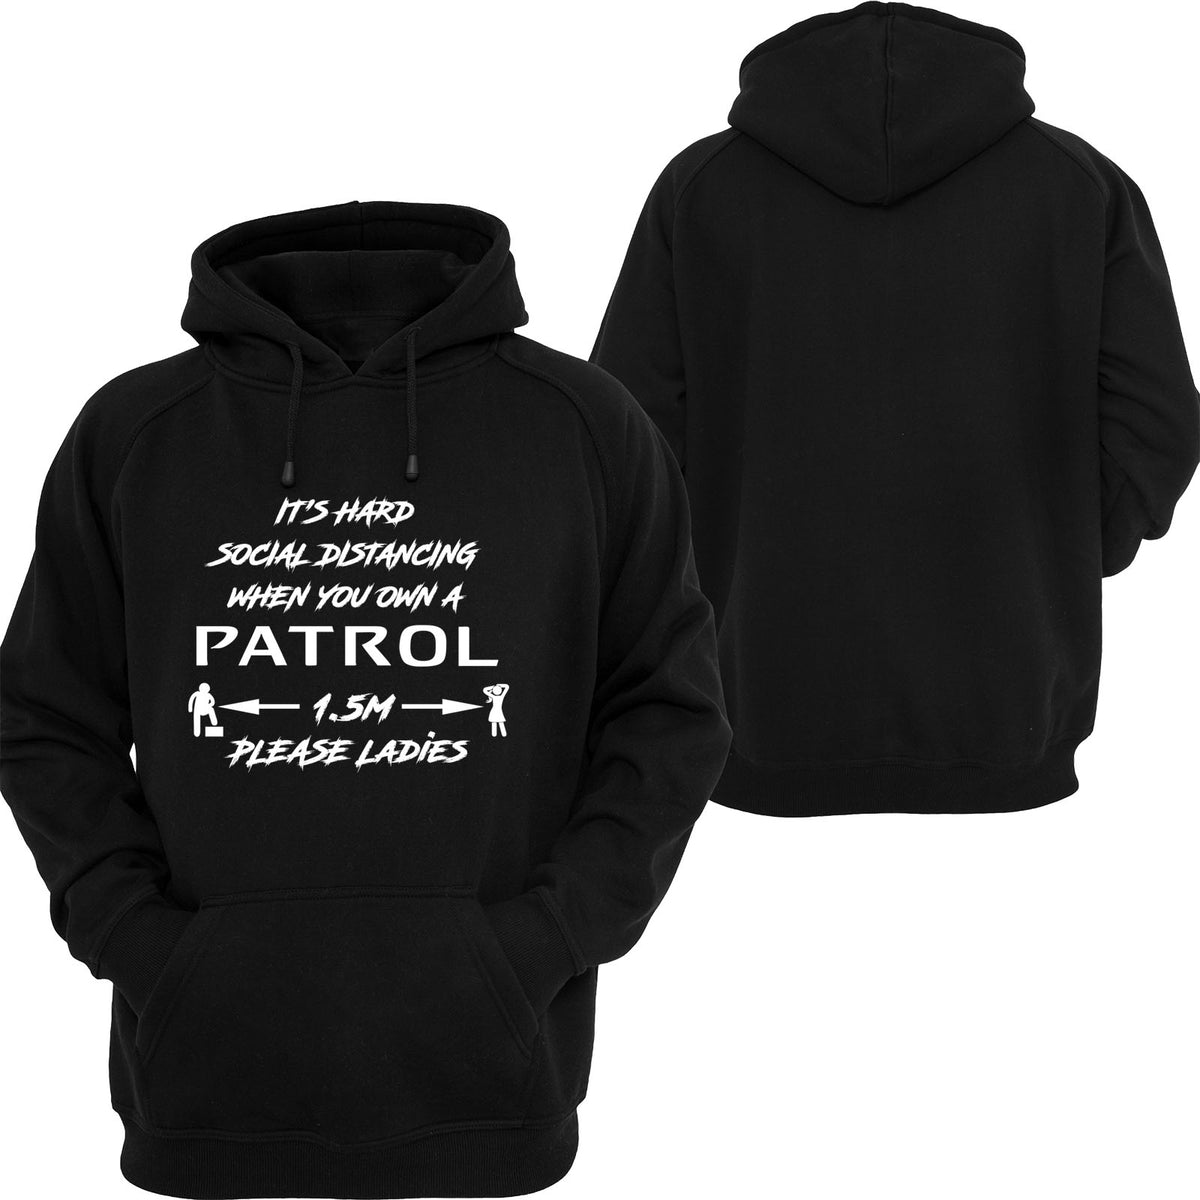 Social Distancing is hard PATROL Hoodie or Tshirt/Singlet - Chaotic Customs